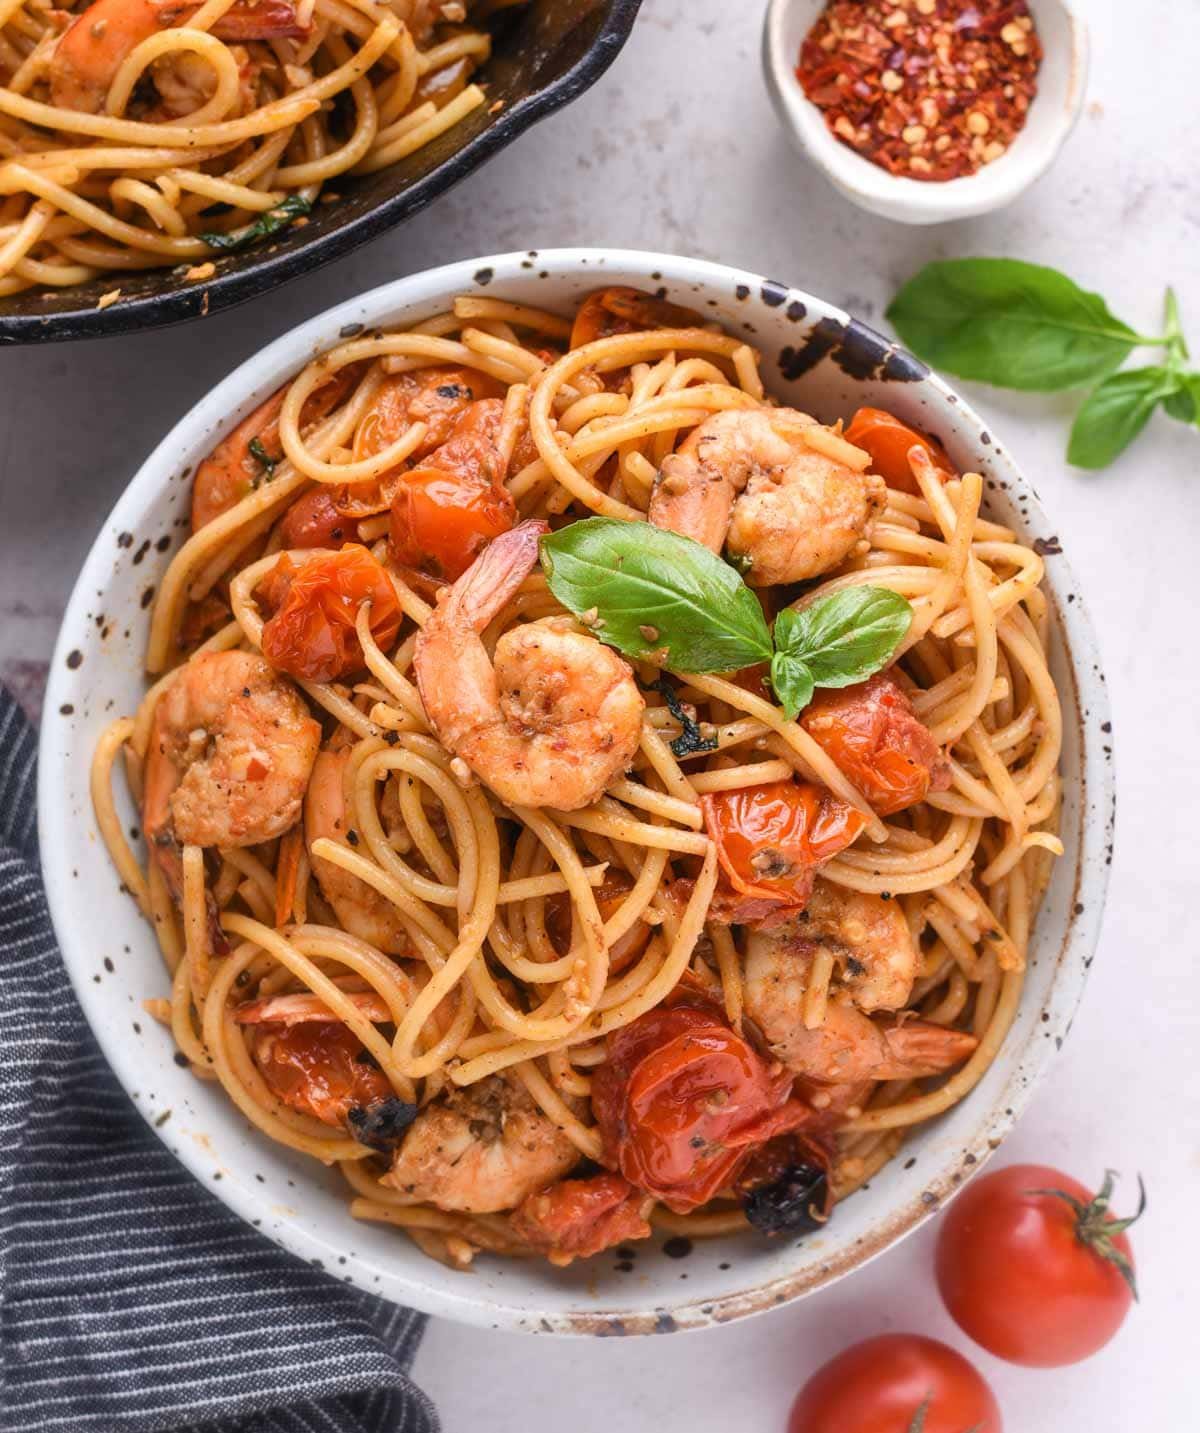 Cheery Tomato Pasta with shrimp has a summer vibe in it. Fresh cherry tomato, garlic, olive oil, lots of fresh basil, and shrimp, this tomato pasta is light and refreshing.